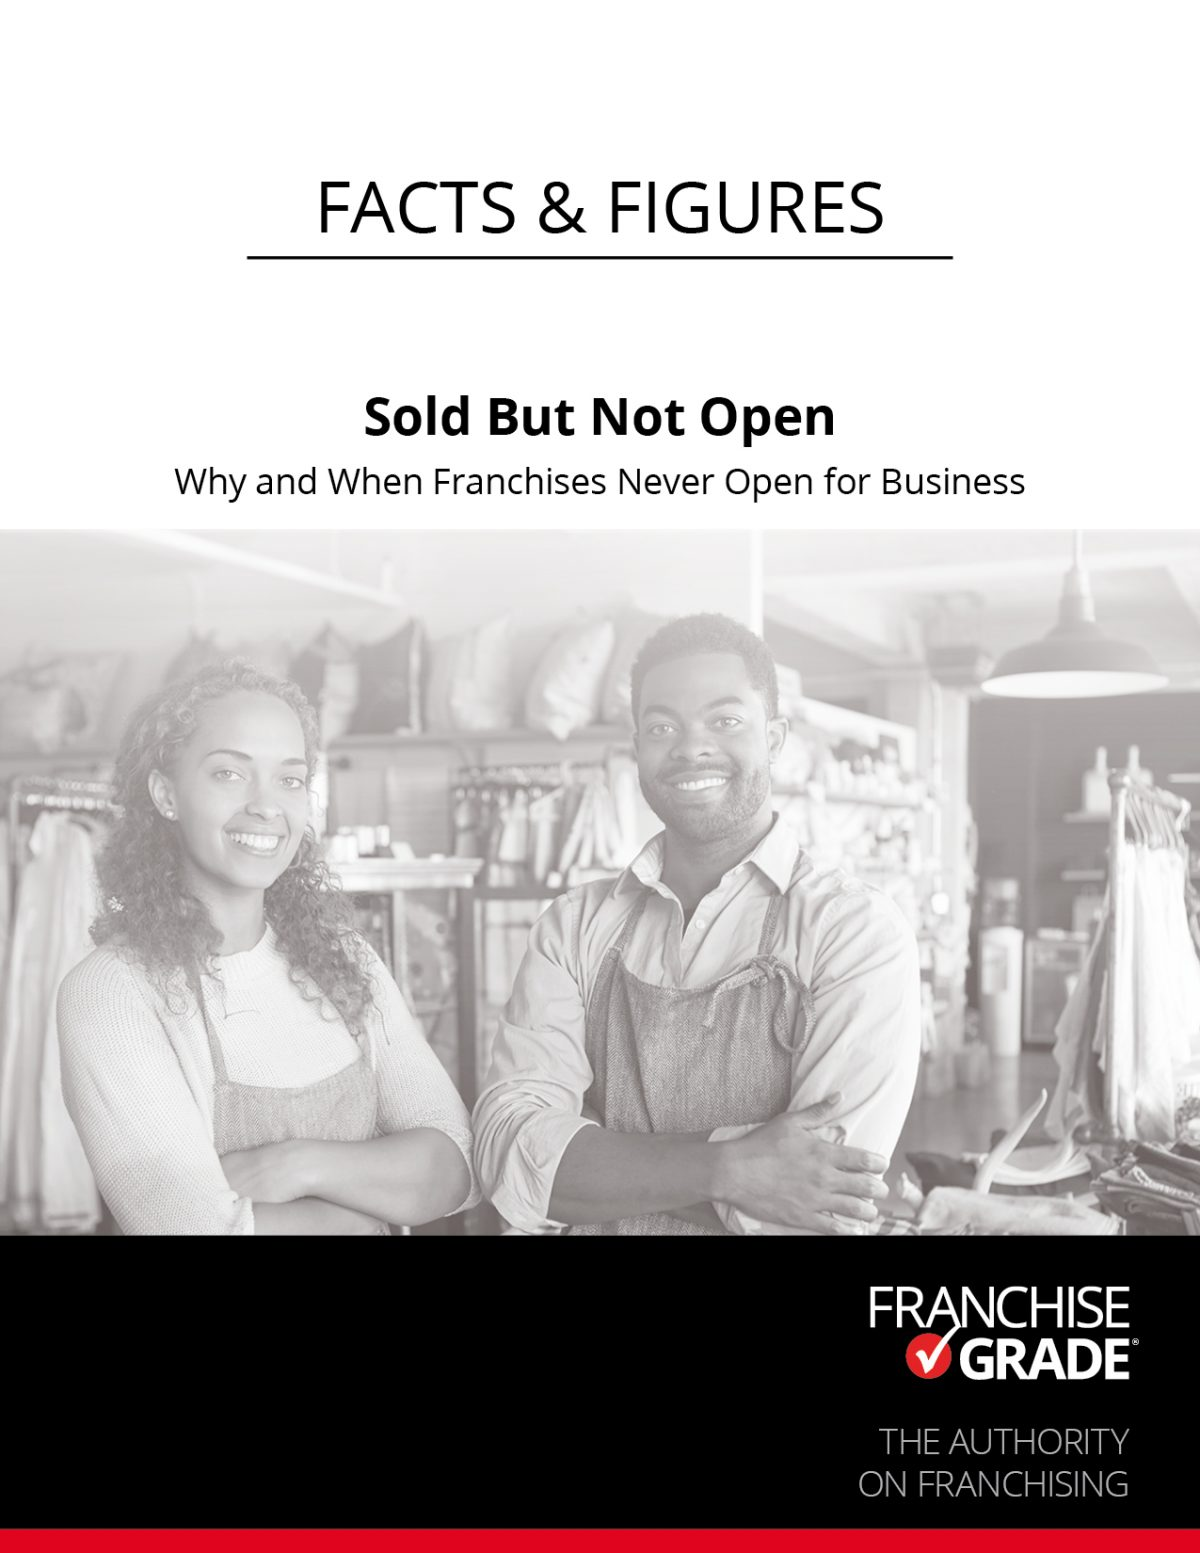 Facts and figures sold but not open franchise grade final 1200x1553